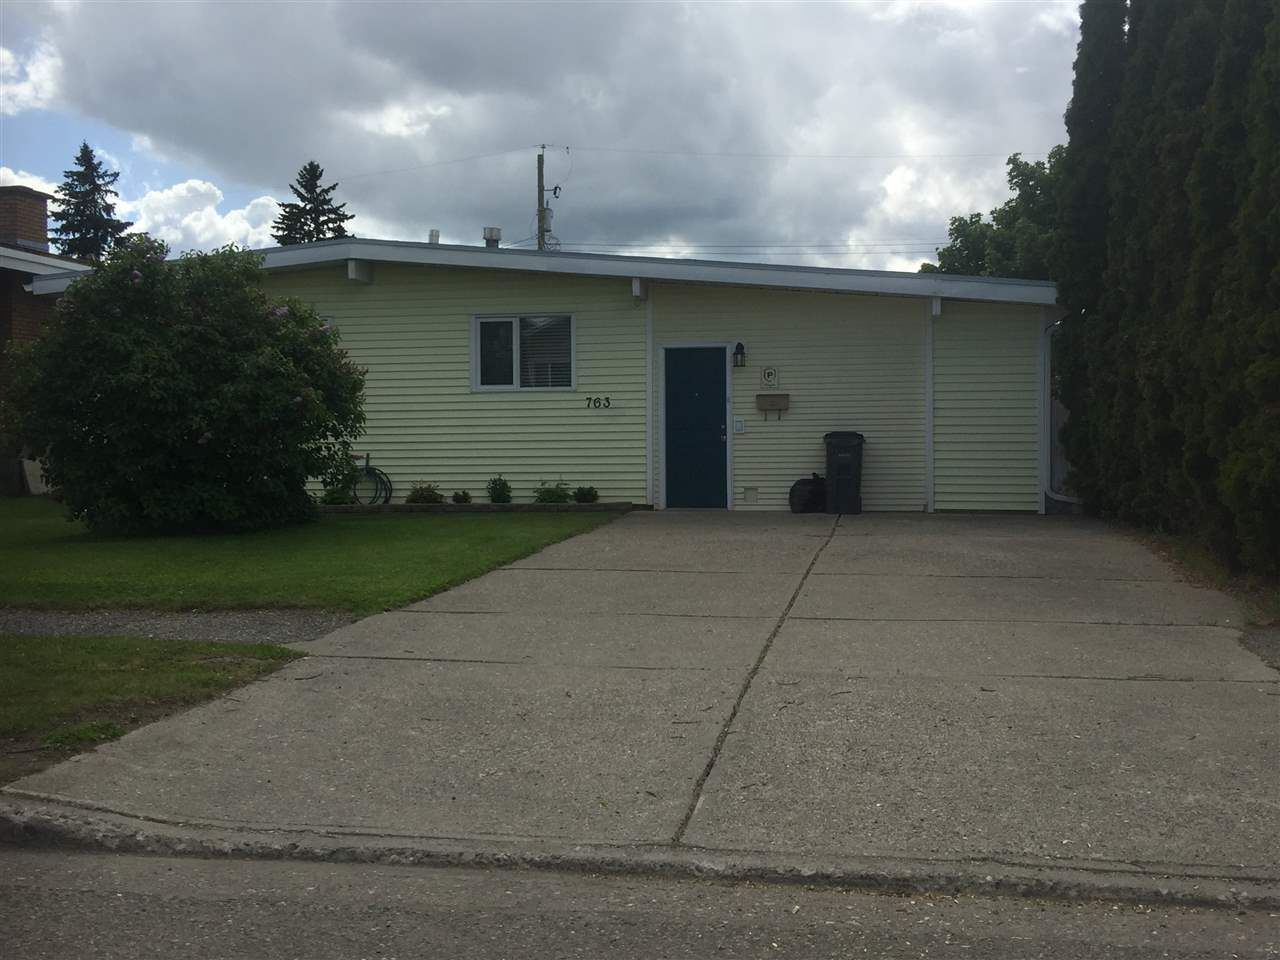 """Main Photo: 763 HARPER Street in Prince George: Central House for sale in """"CENTRAL"""" (PG City Central (Zone 72))  : MLS®# R2462152"""